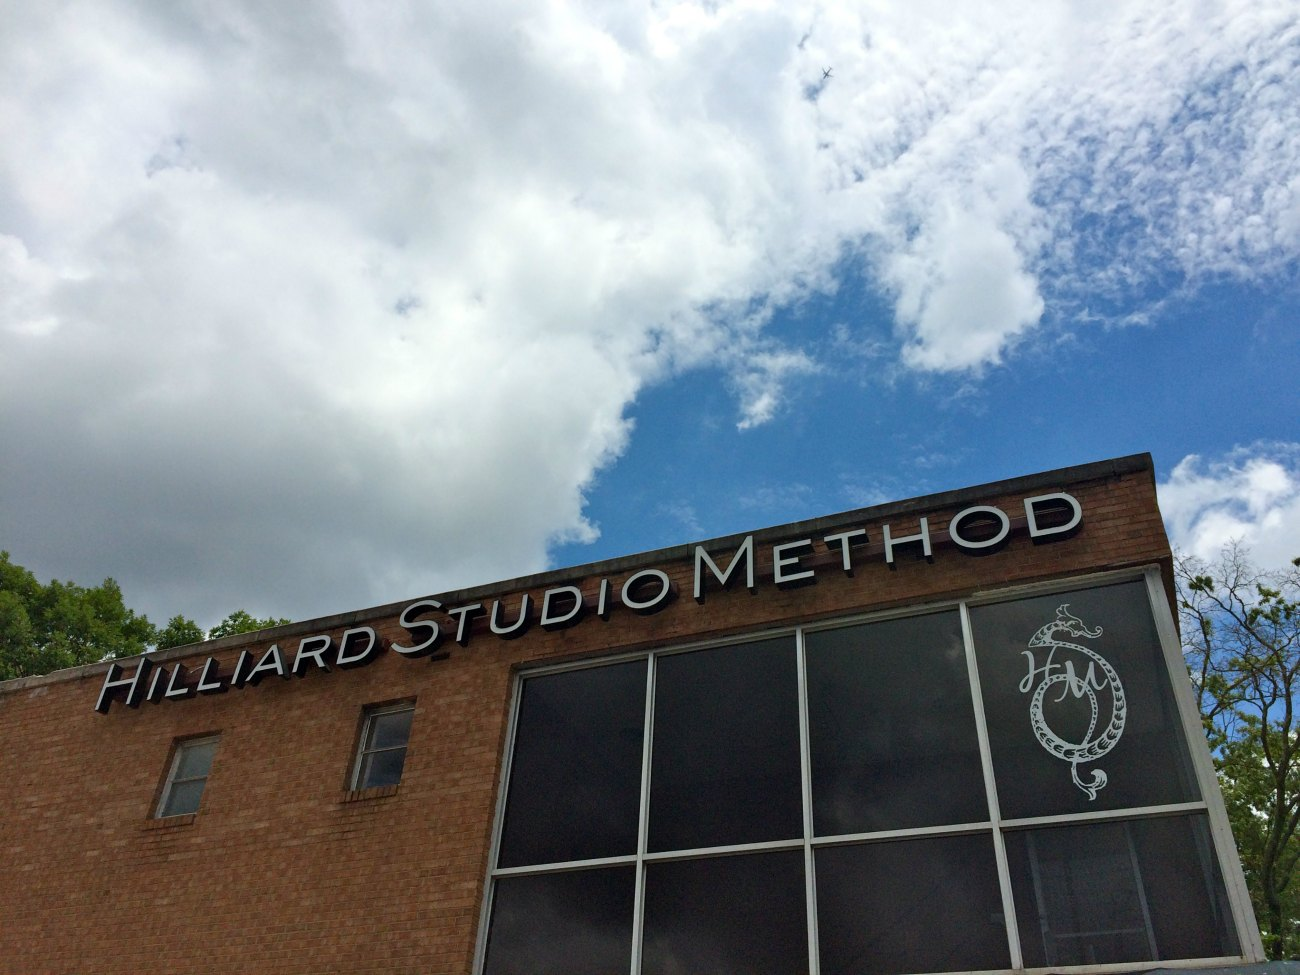 Hilliard Studio Method opening new fitness concept HSM Core this month